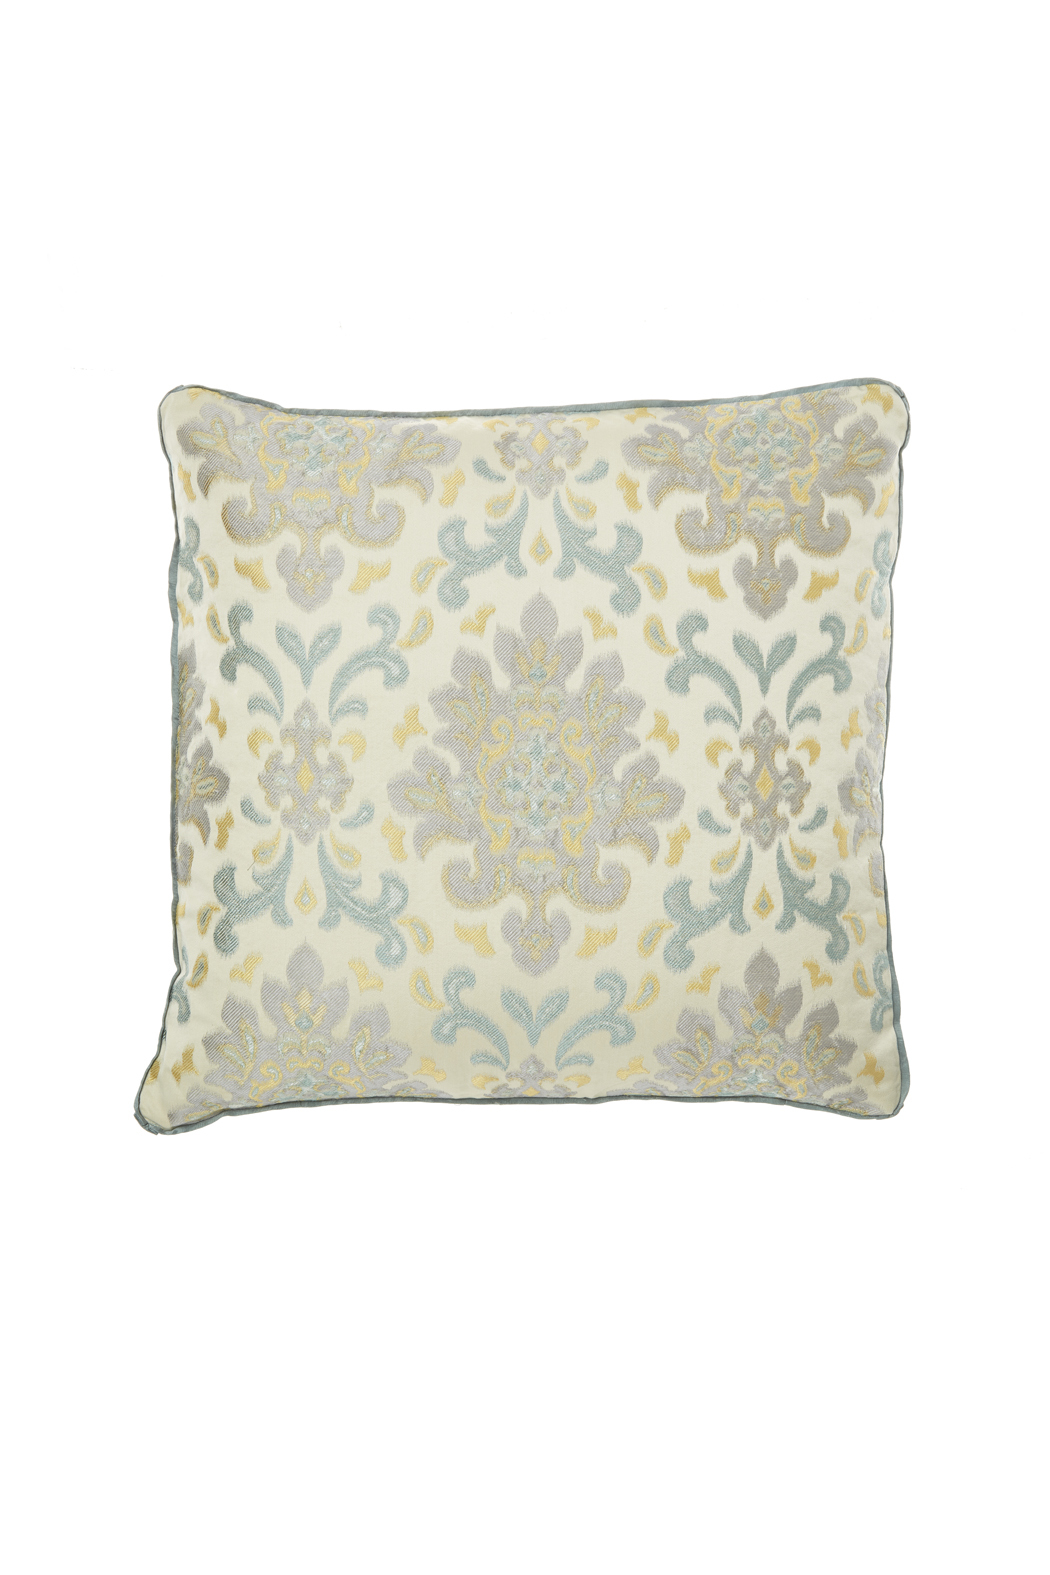 Jacquard Decorative Pillows : Bella Notte Jacquard Throw Pillow from Omaha by Early To Bed ? Shoptiques